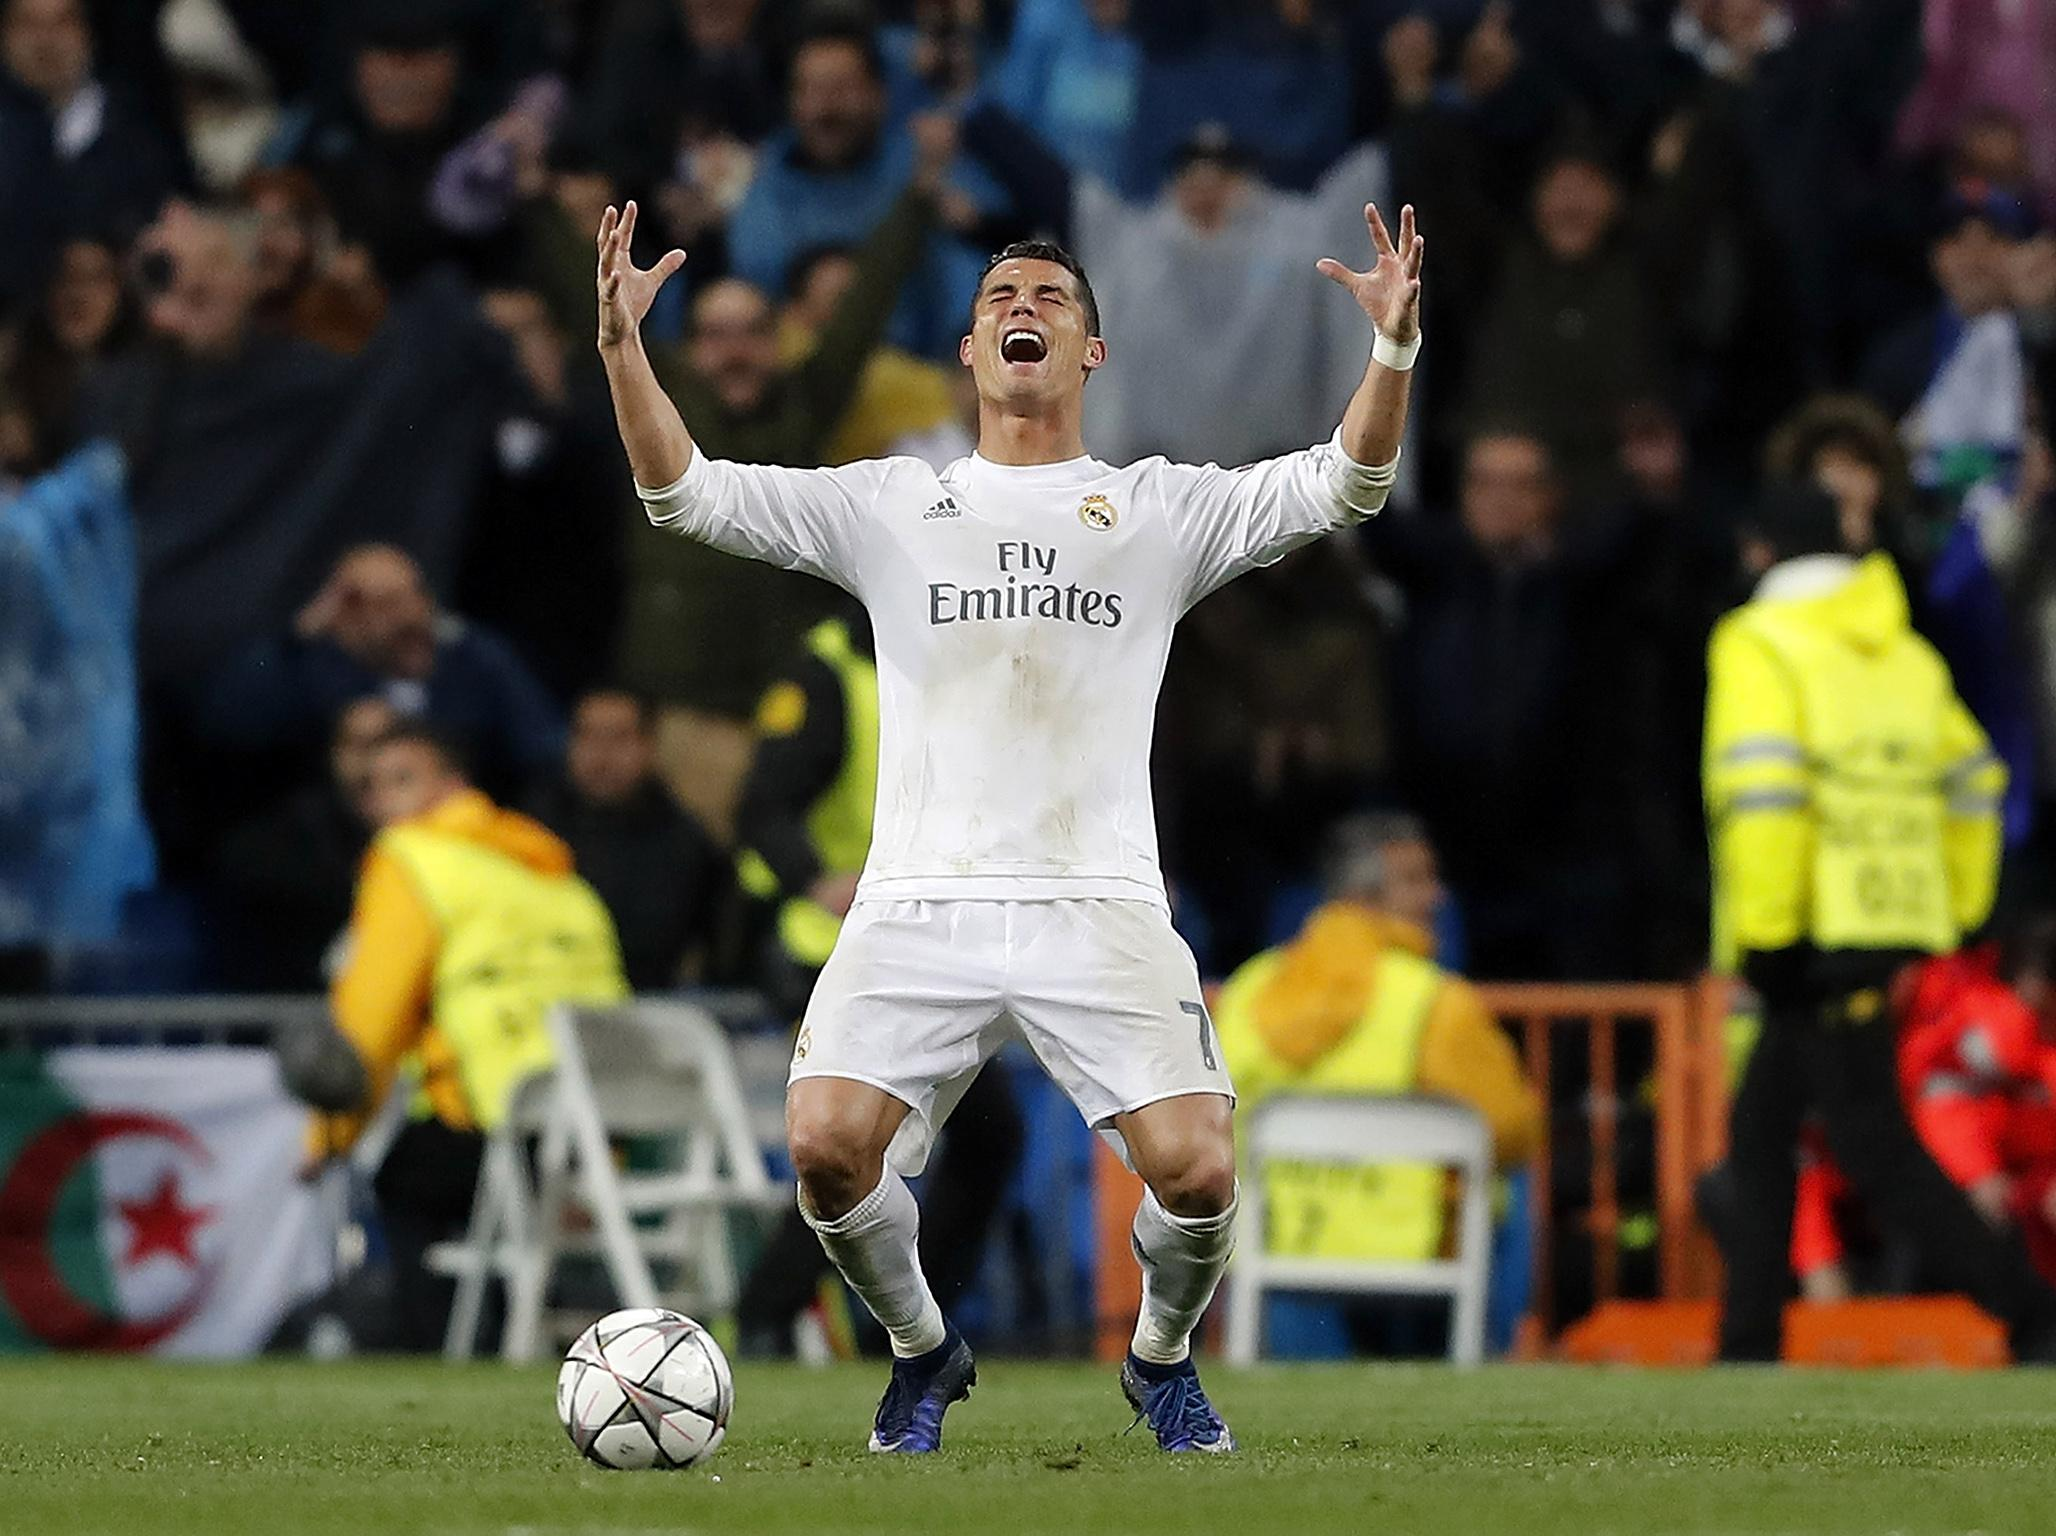 e59b3c3d4 Luka Modric does not believe Cristiano Ronaldo will leave Real ...